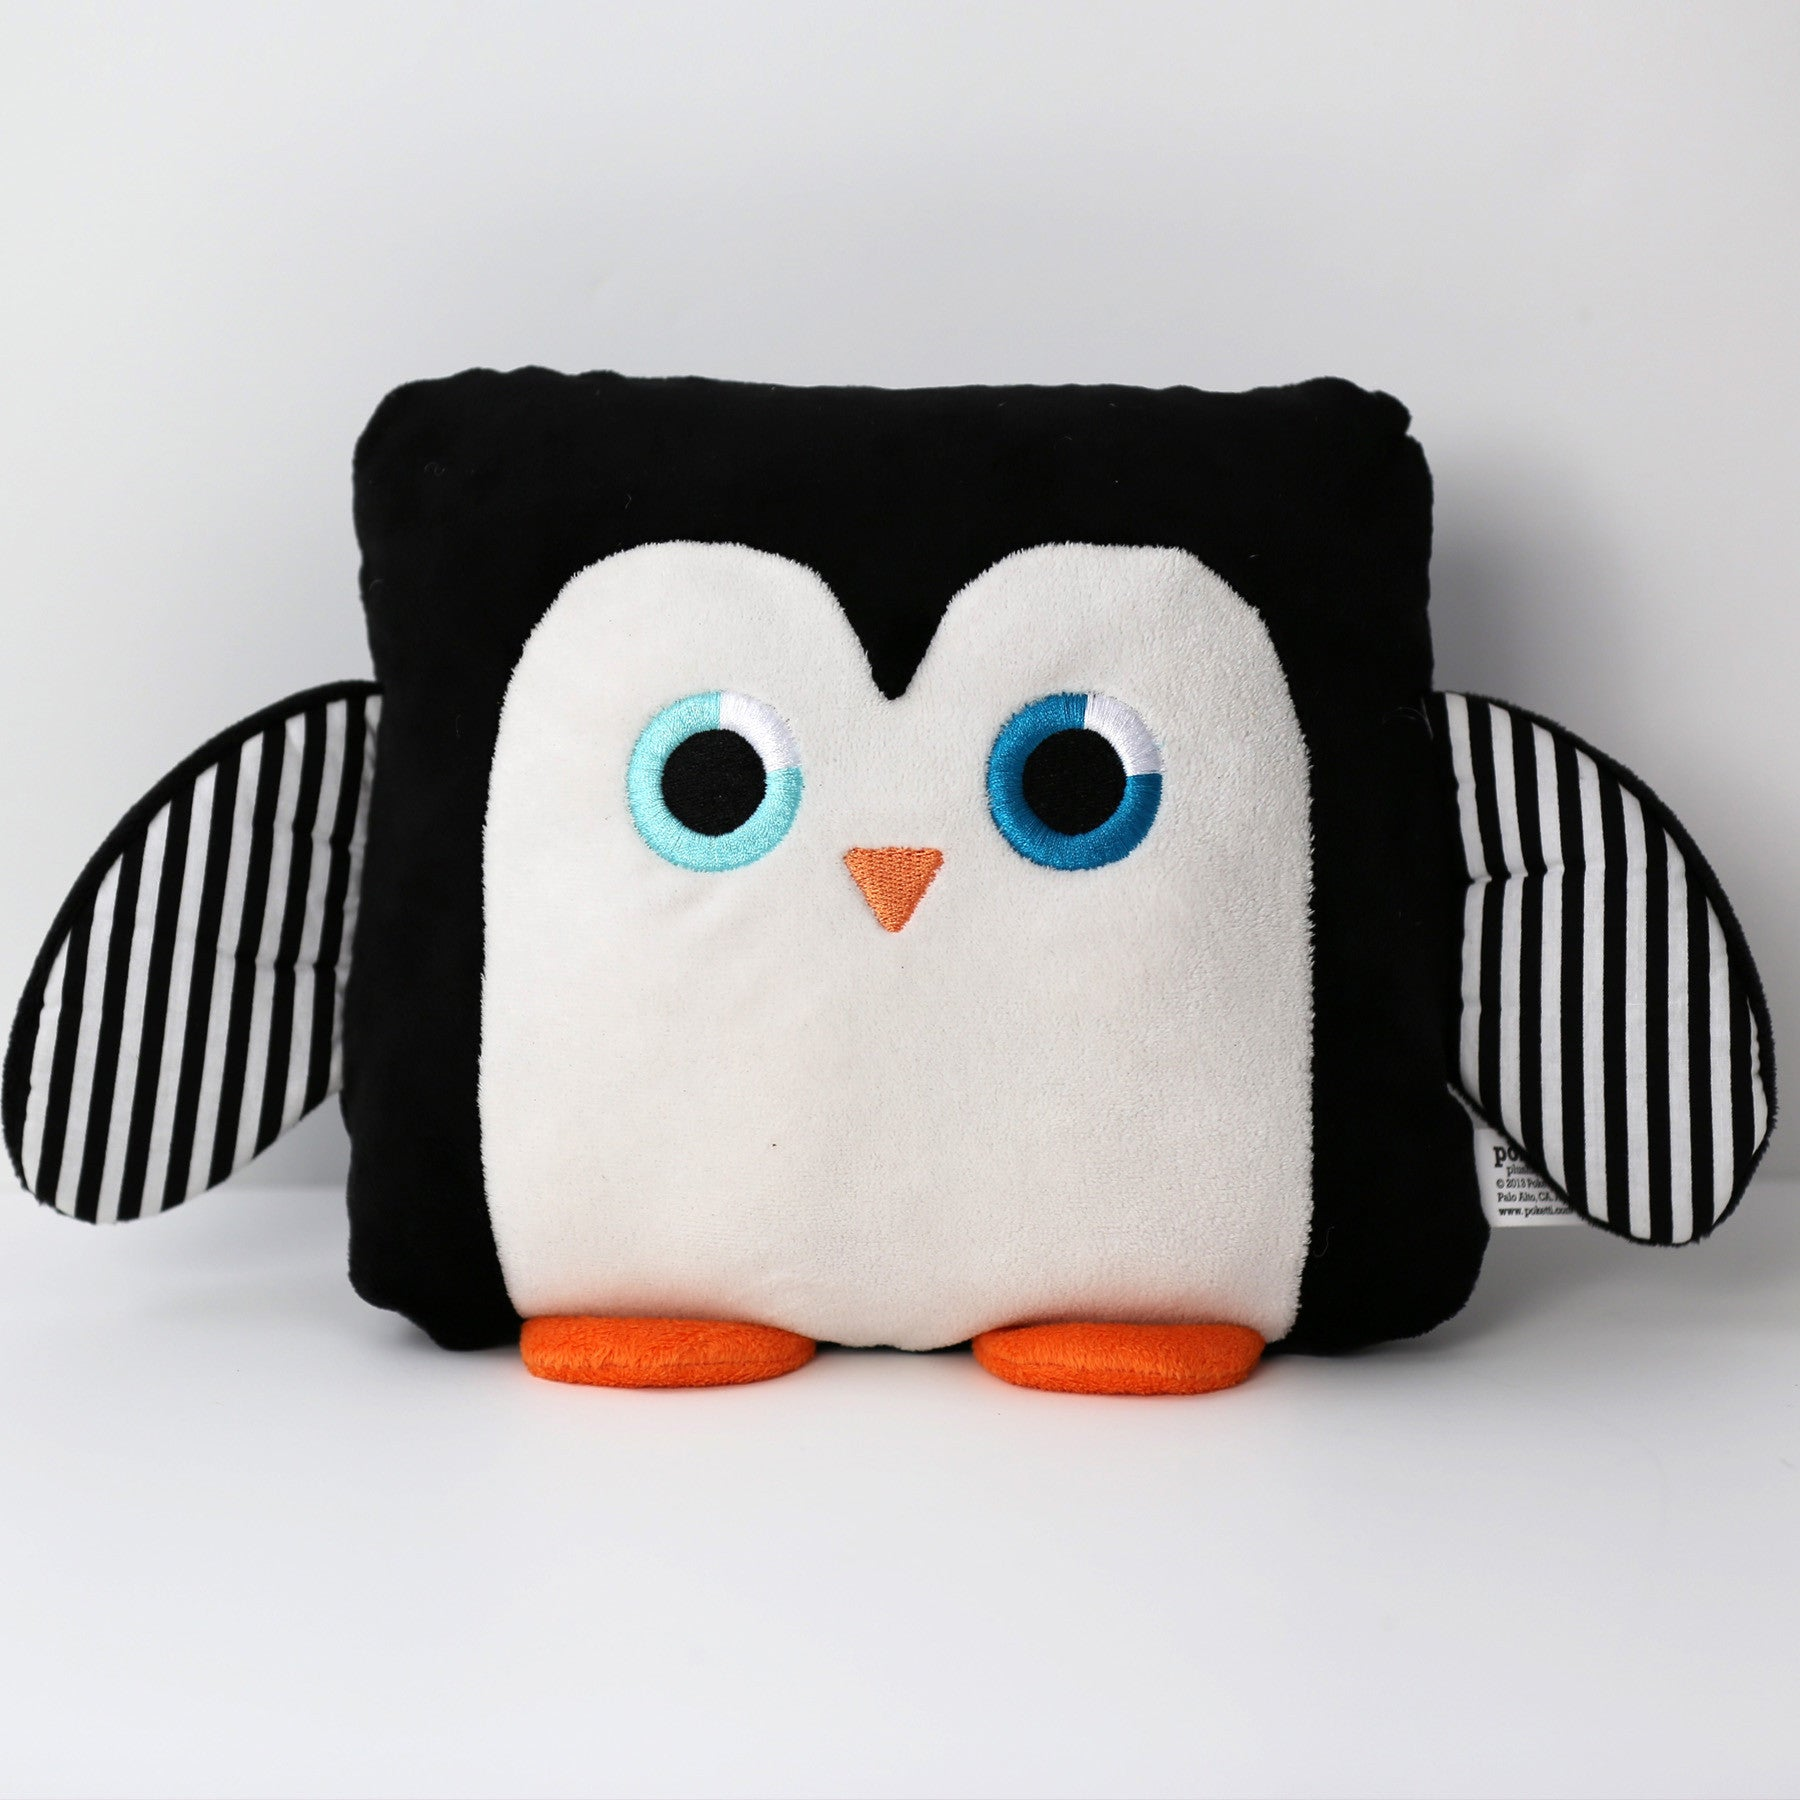 Poketti Penguin Bird Plush Pillow with a Pocket